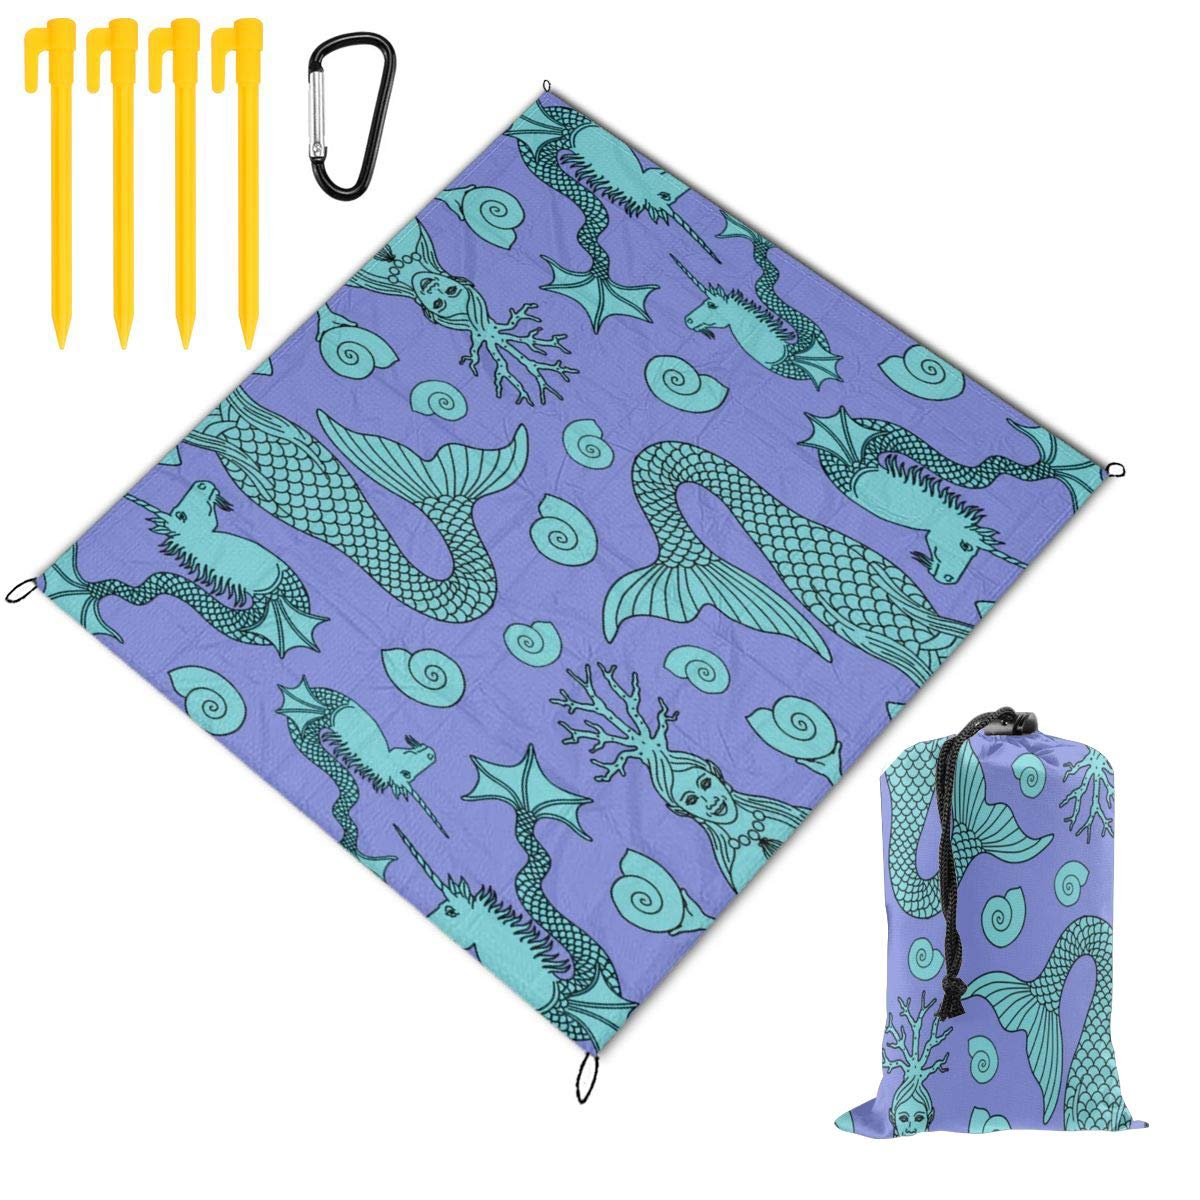 FunnyCustom Picnic Blanket Portable Waterproof Unicorns and Mermaids Purple Picnic Mat for Beach Camping 79 x 57 Inch